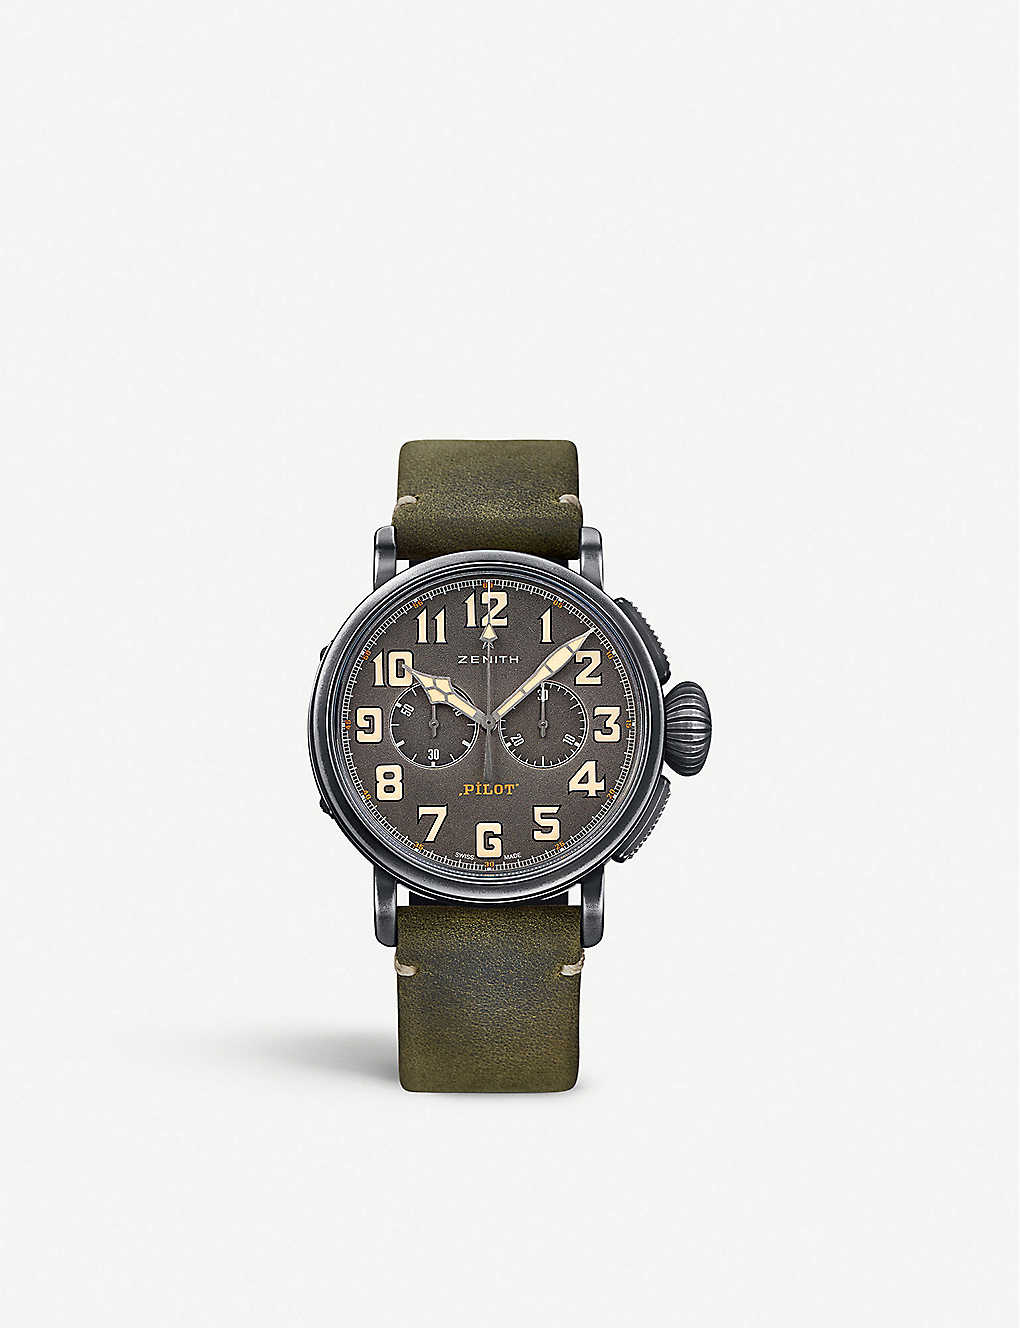 ZENITH: 112430406921C773 Pilot Type 20 Extra Special round green leather strap watch